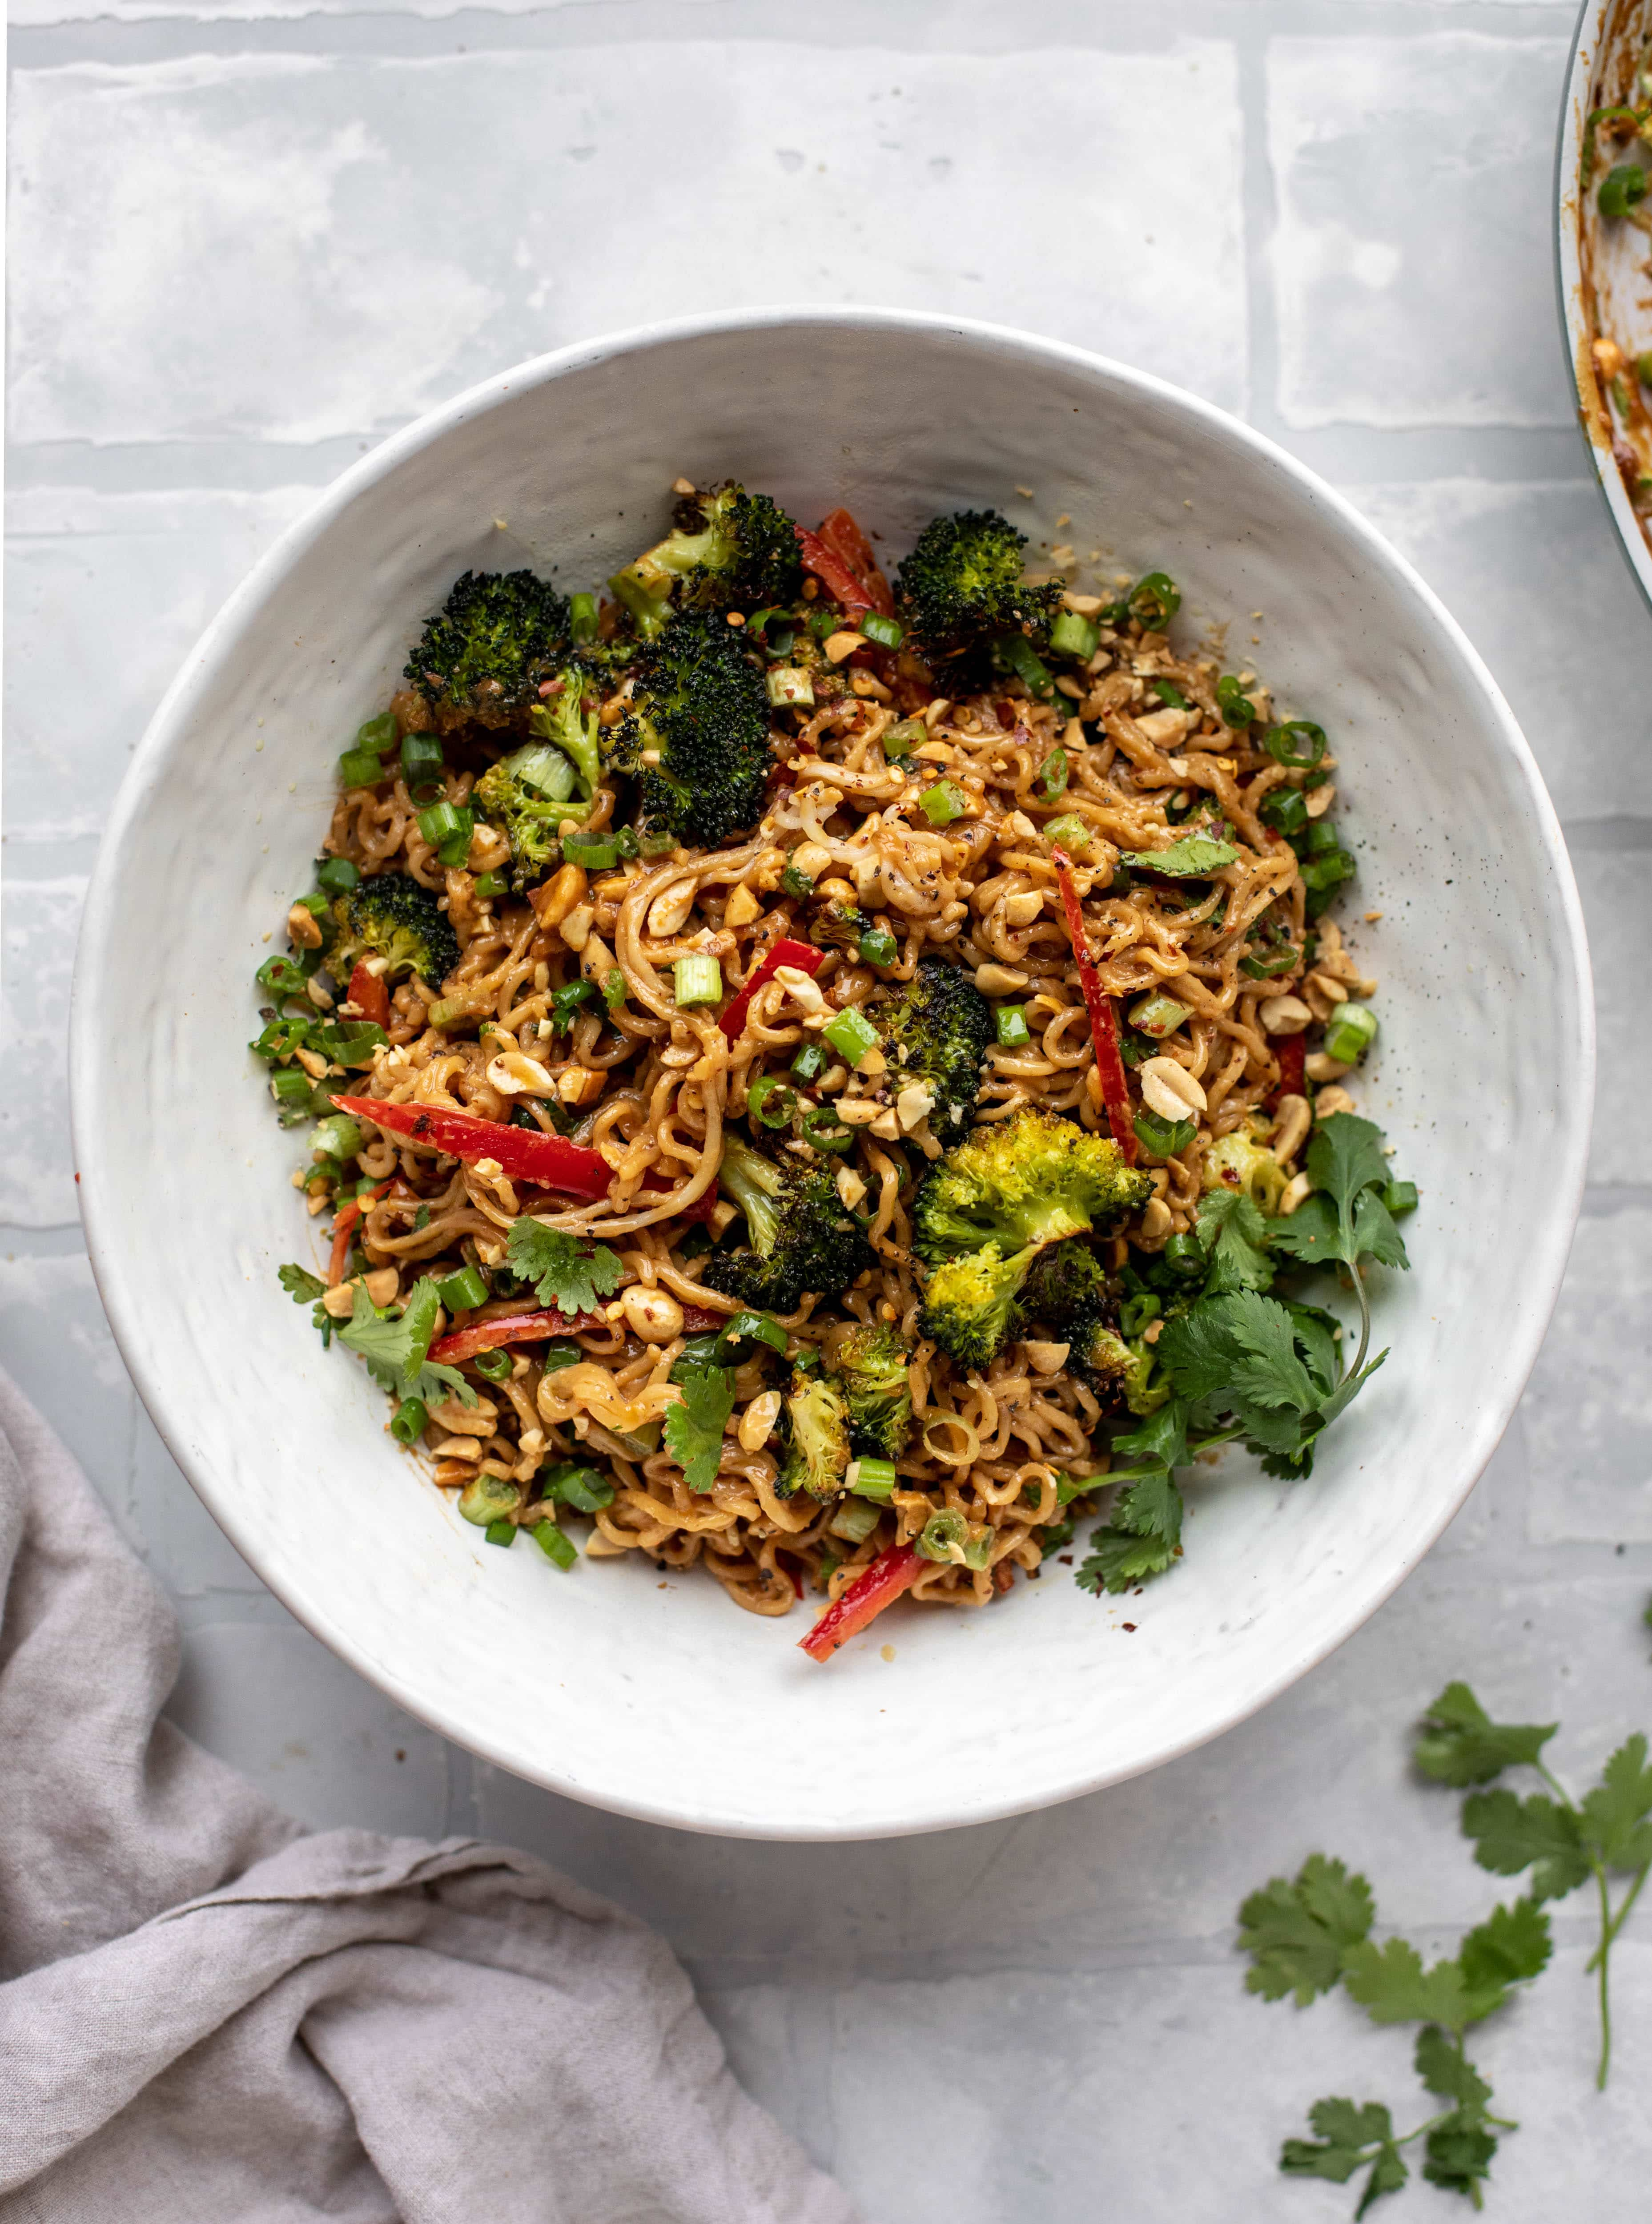 These are the most delicious peanut noodles! Tossed with roasted broccoli, red peppers, scallions, peanuts and an incredibly flavorful sauce!